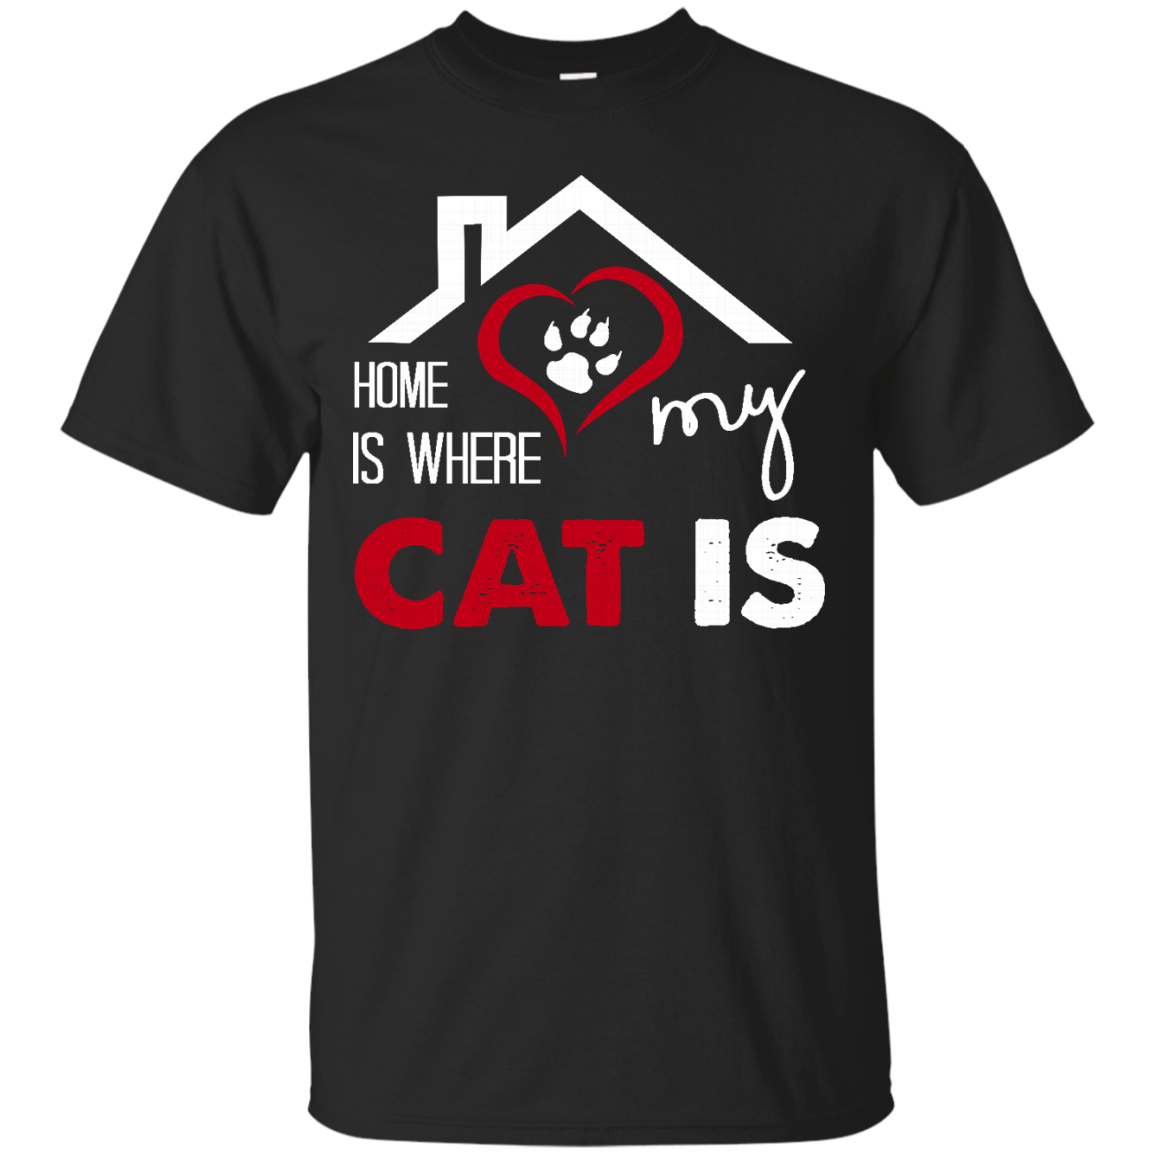 Cat T shirt Home is Where My Cat Is like as a gift for who loves Cat  yourself  friends on birthday  christmas or Occasions